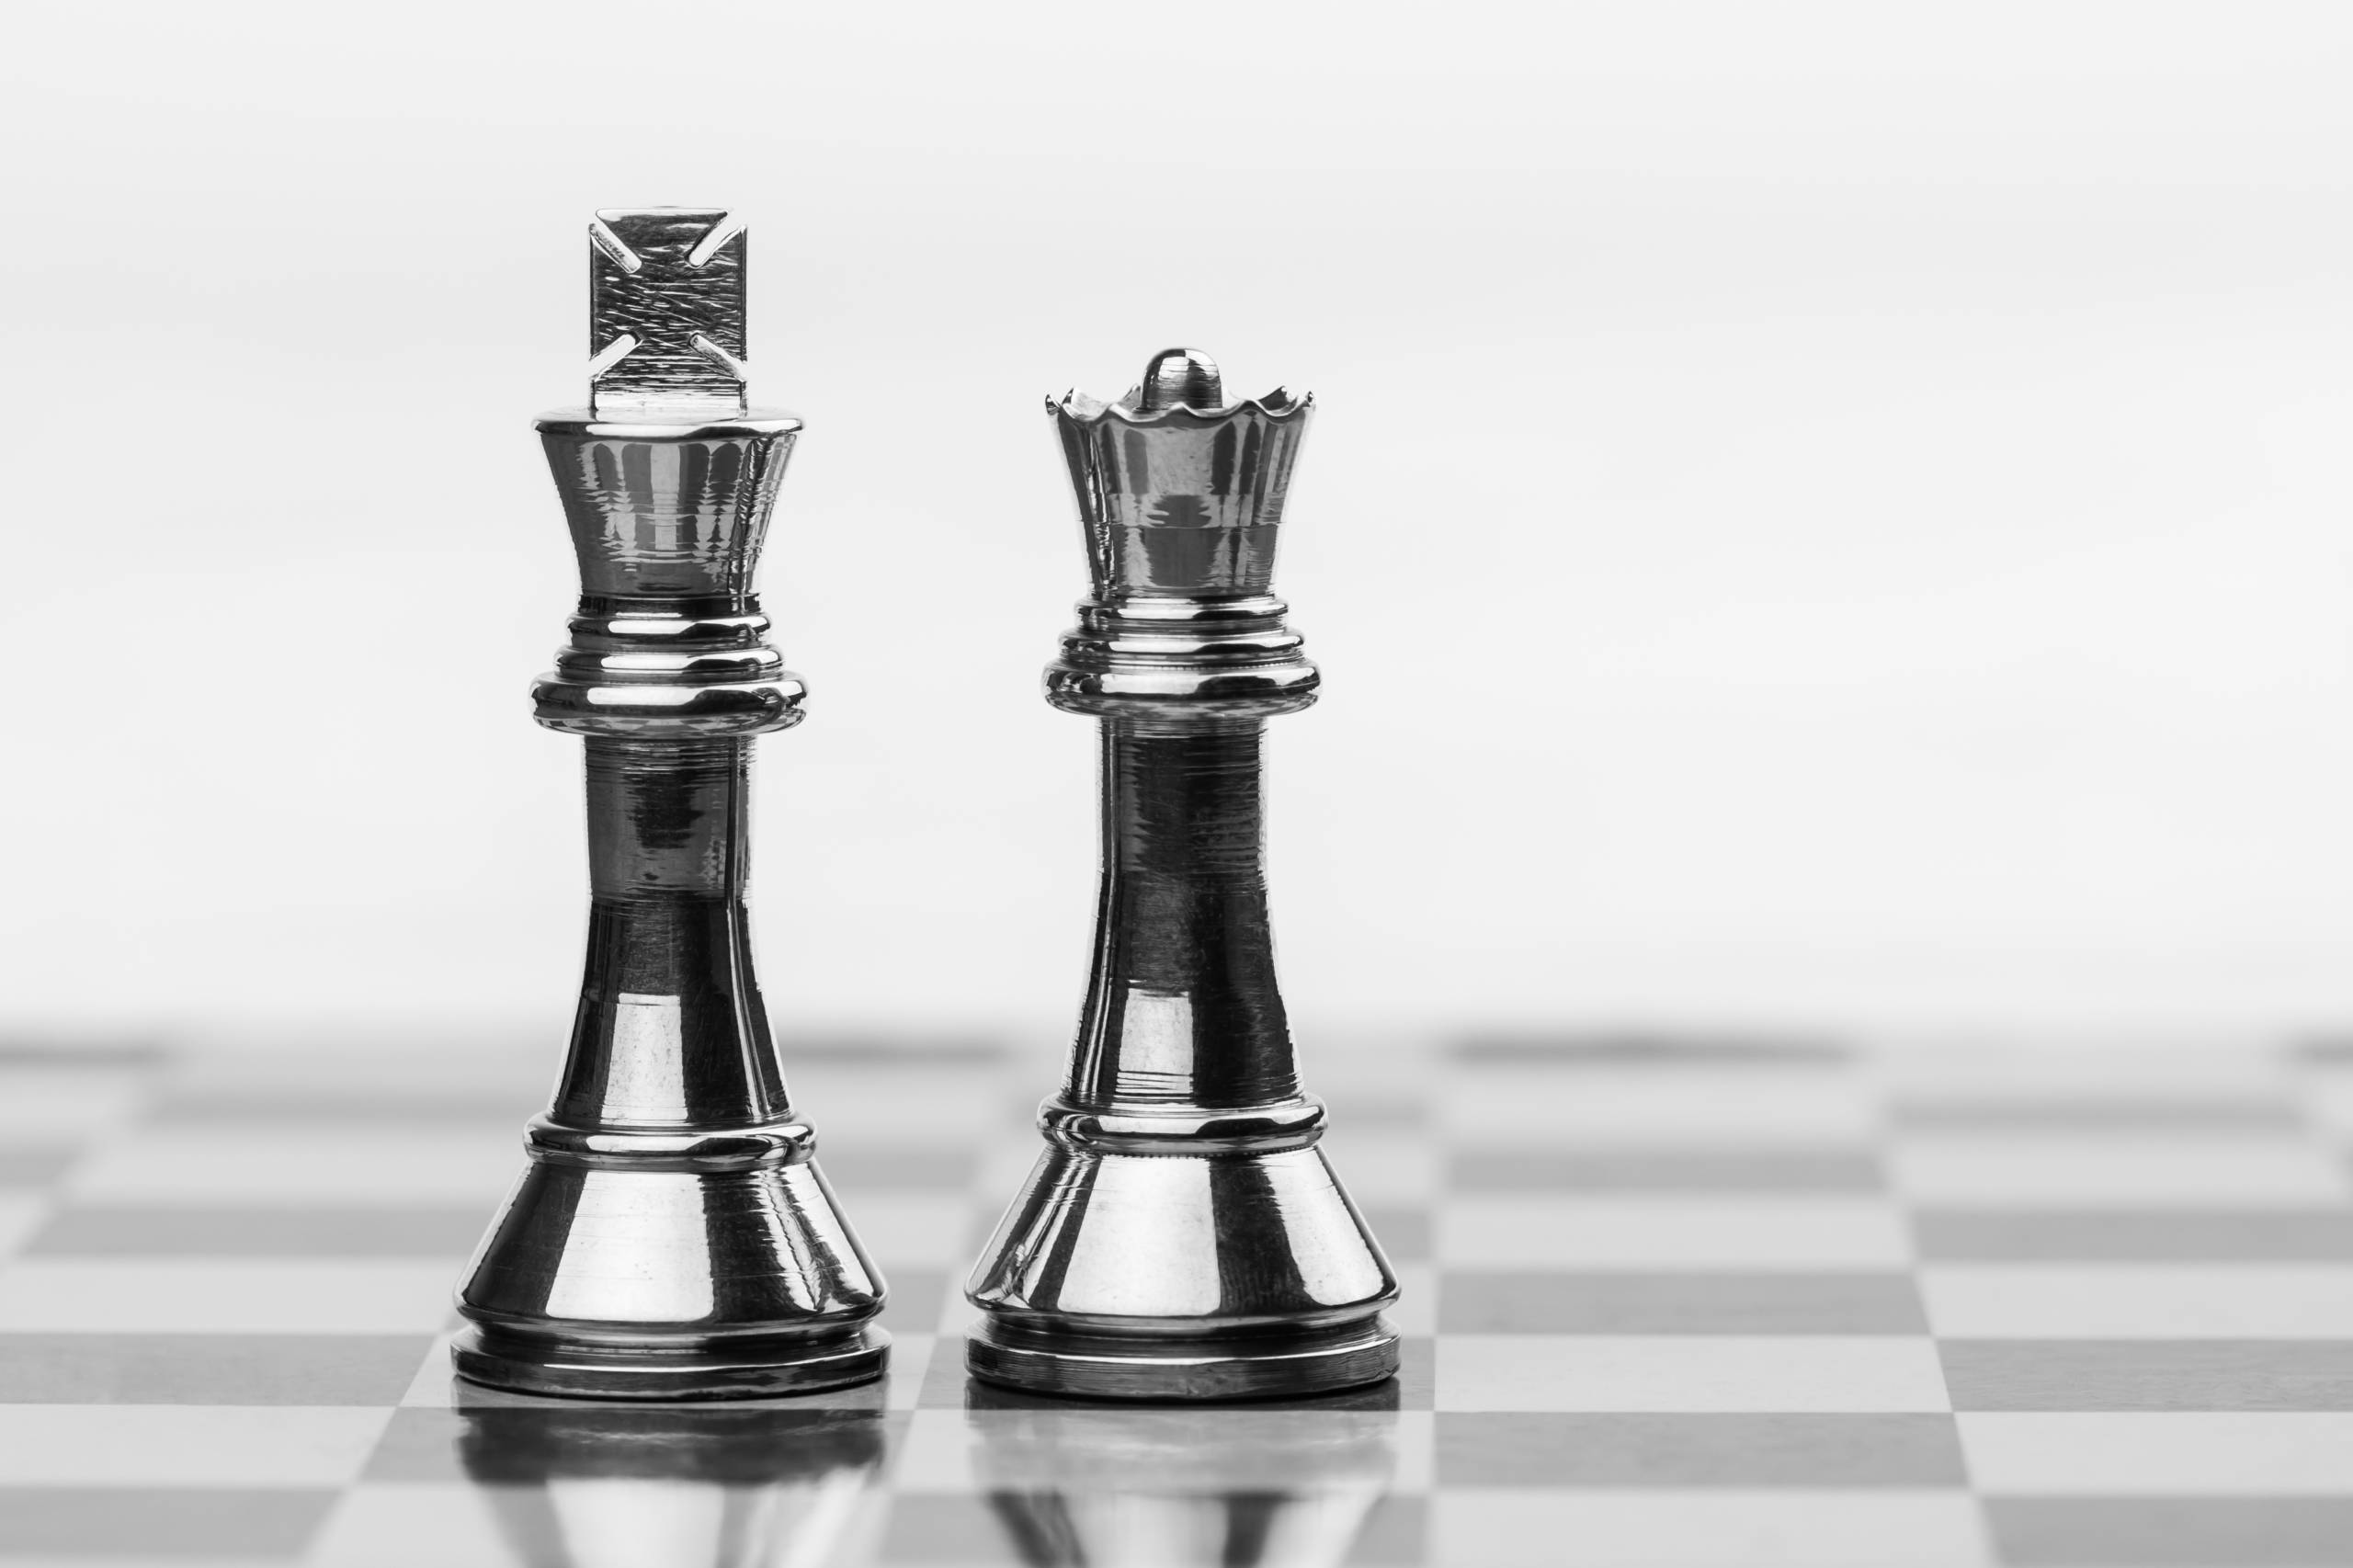 The king and the Queen representing the Chess Game and the implementation of the ELO Rating